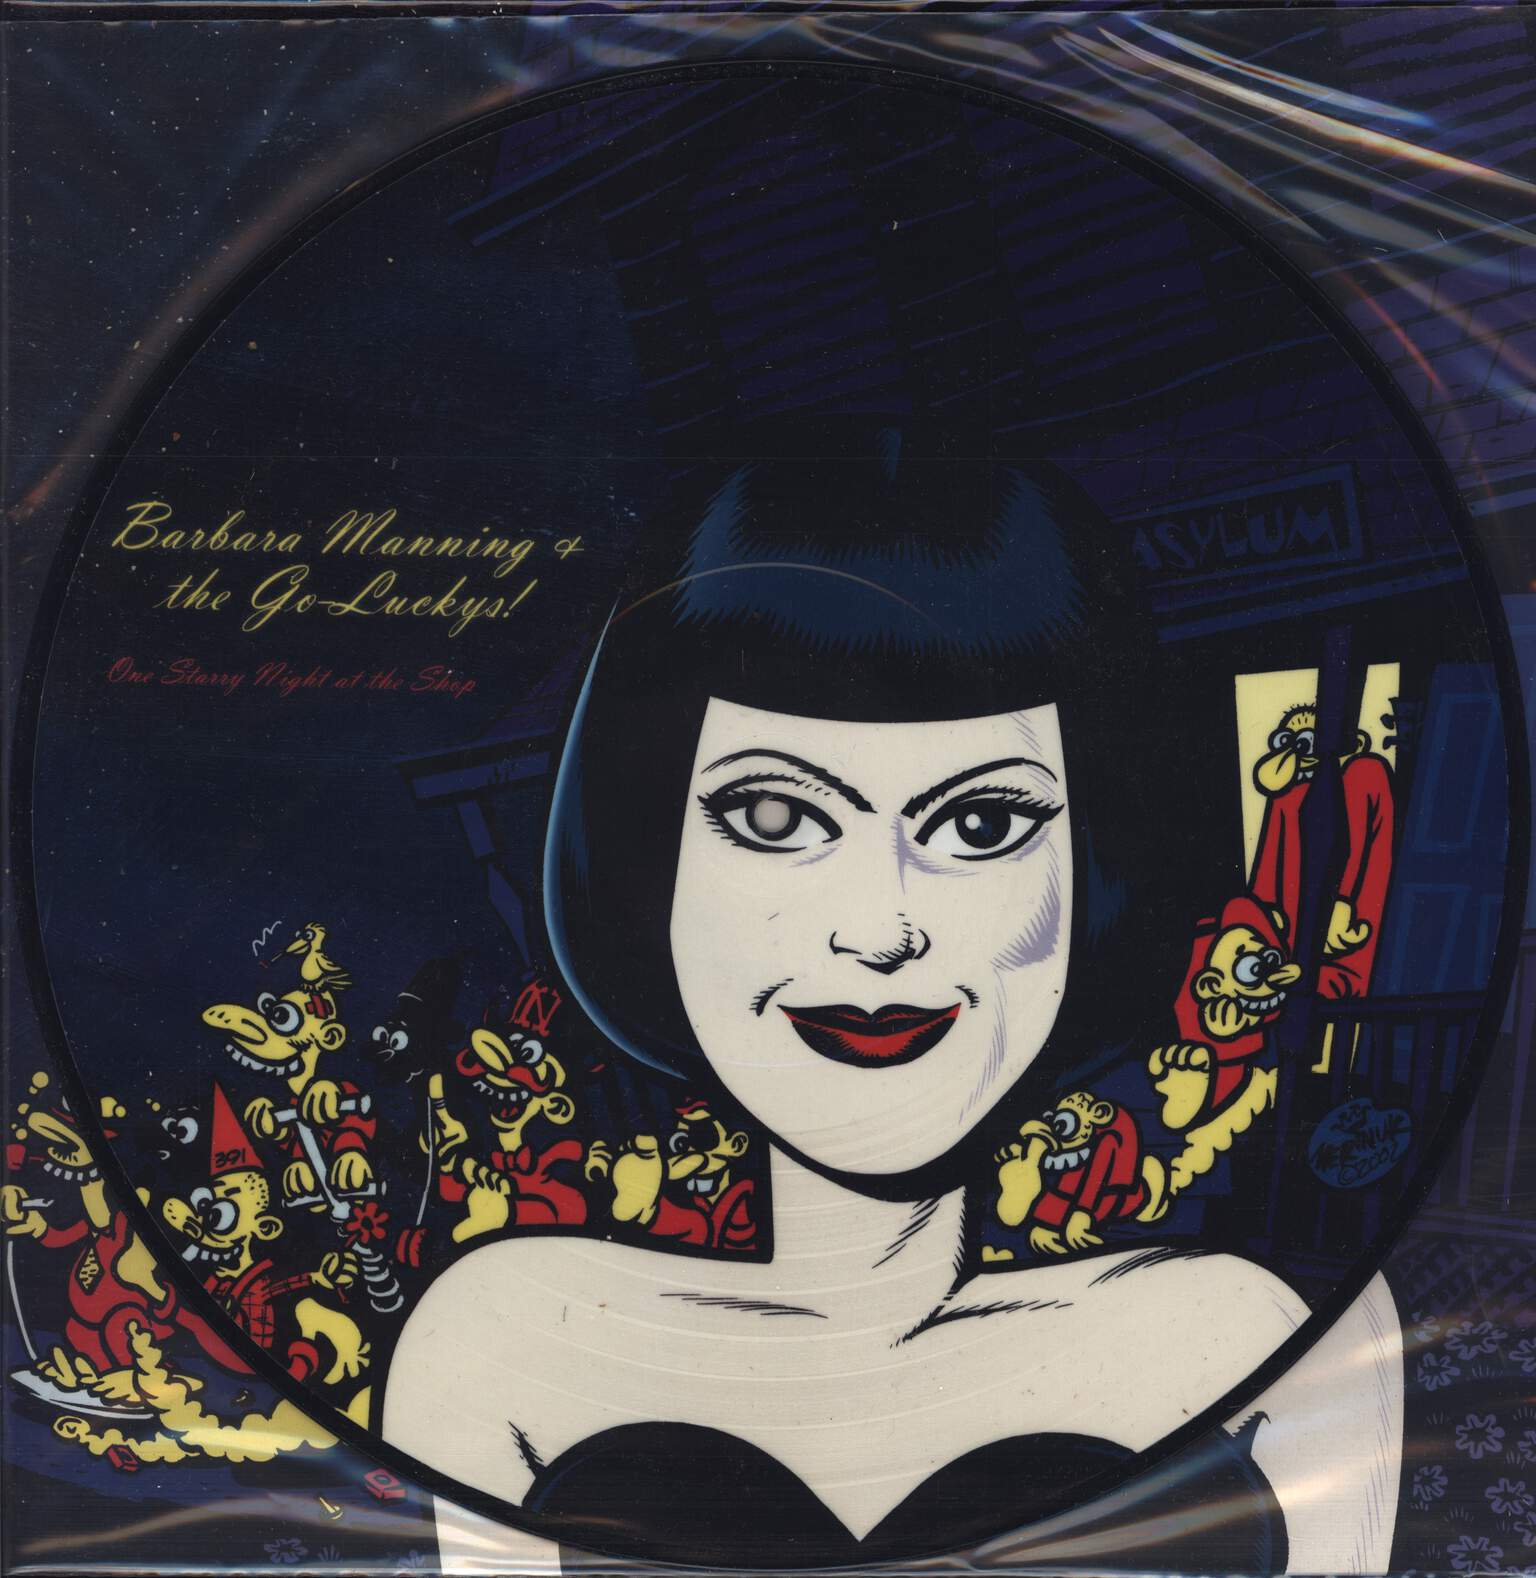 Barbara Manning & The Go-Luckys!: One Starry Night At The Shop, LP (Vinyl)